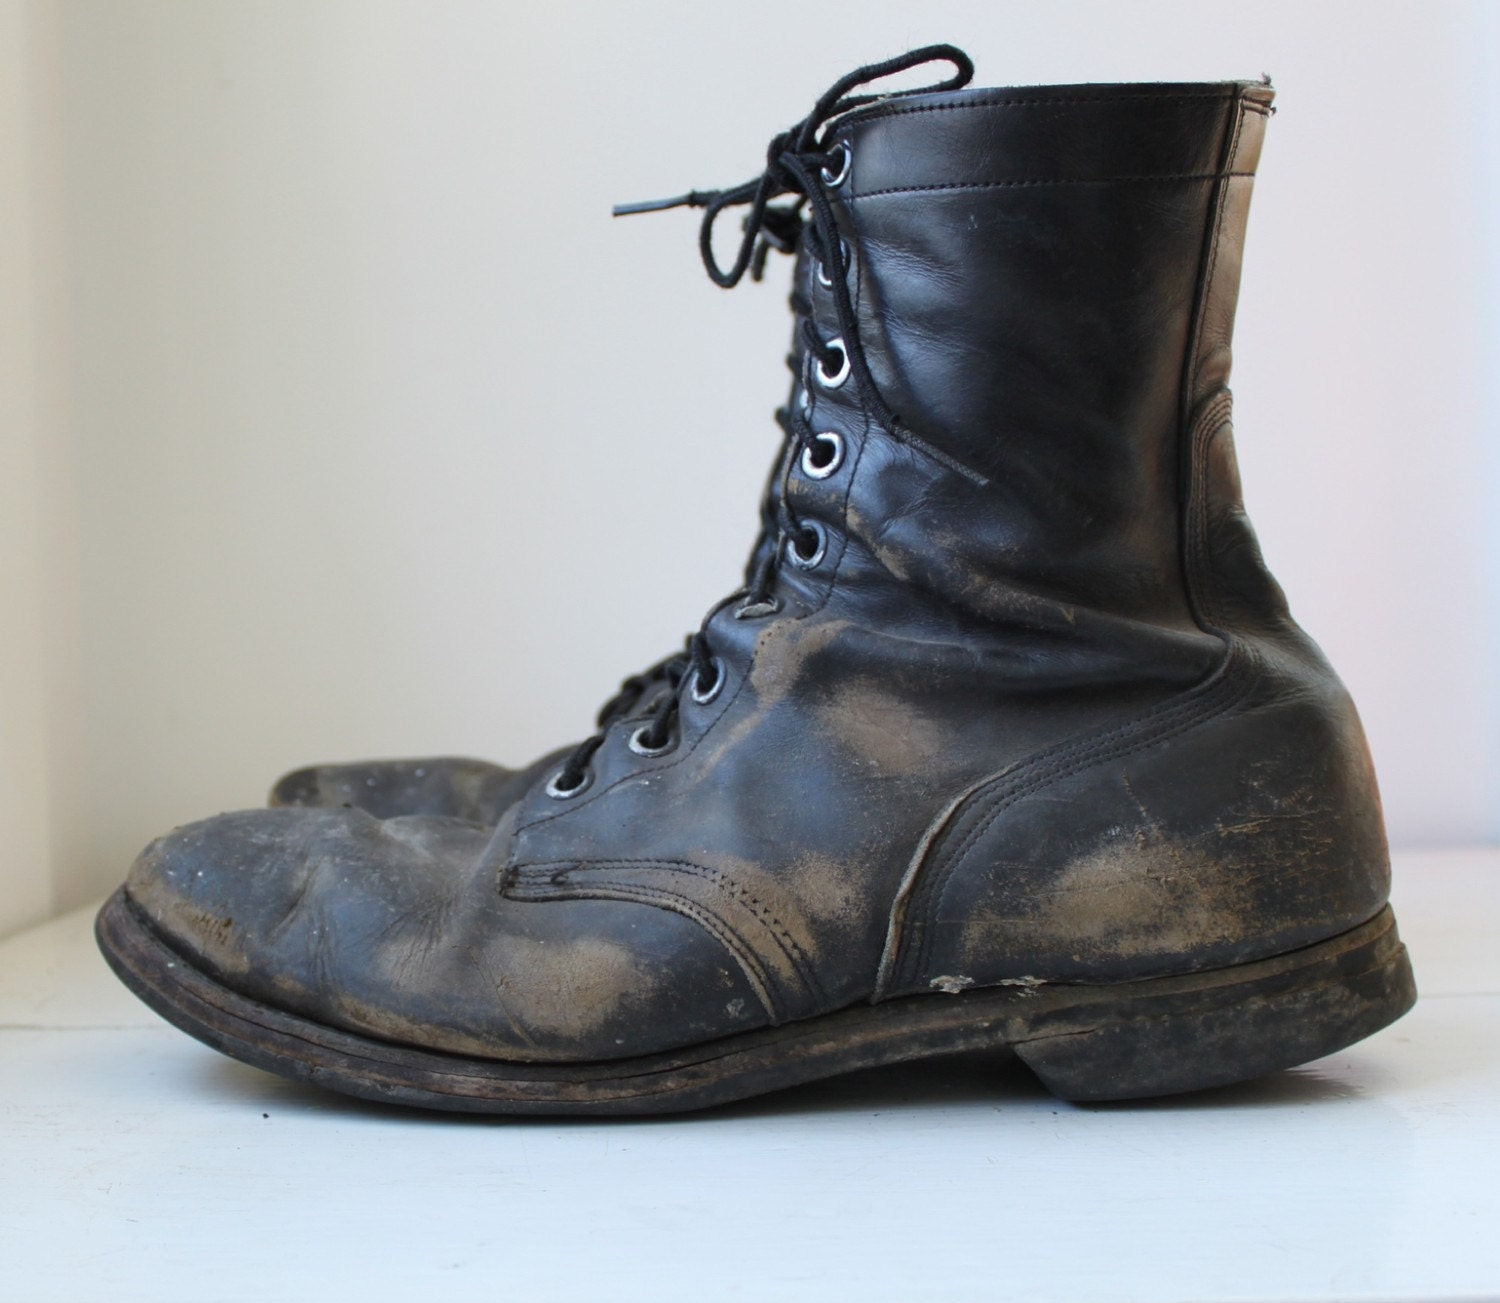 Vintage Military Boot 88